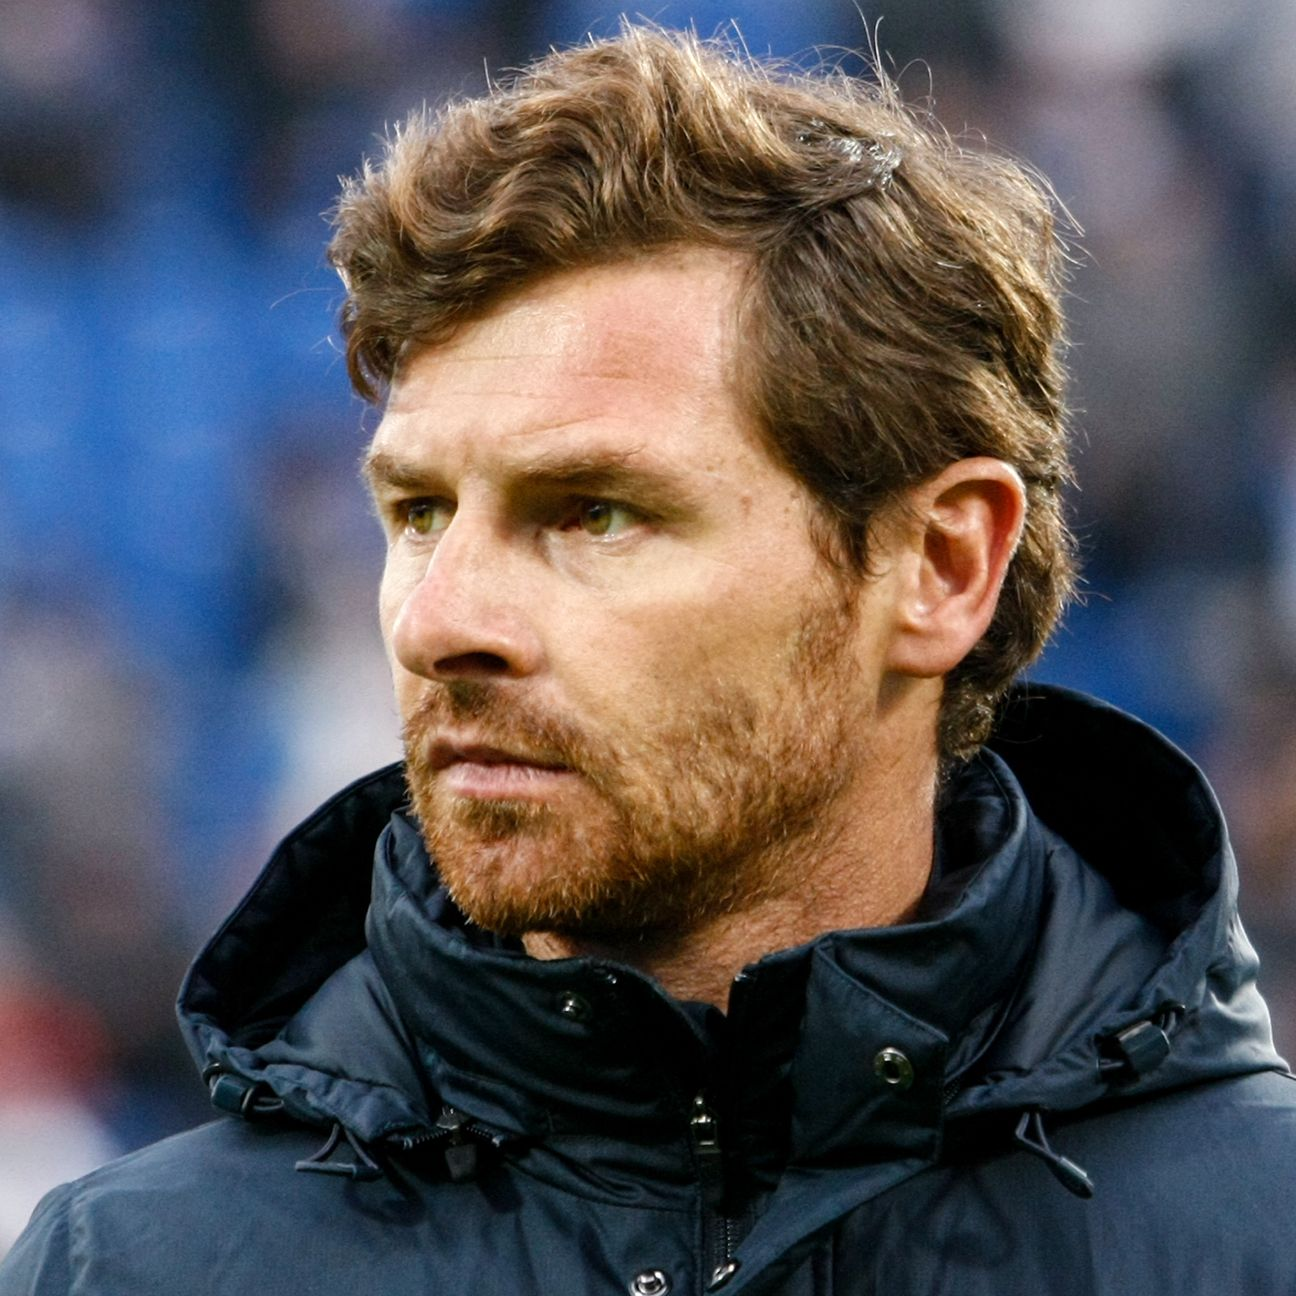 Andres Villas-Boas' Zenit St Petersburg boast an eight-point lead atop the Russian Premier League table.